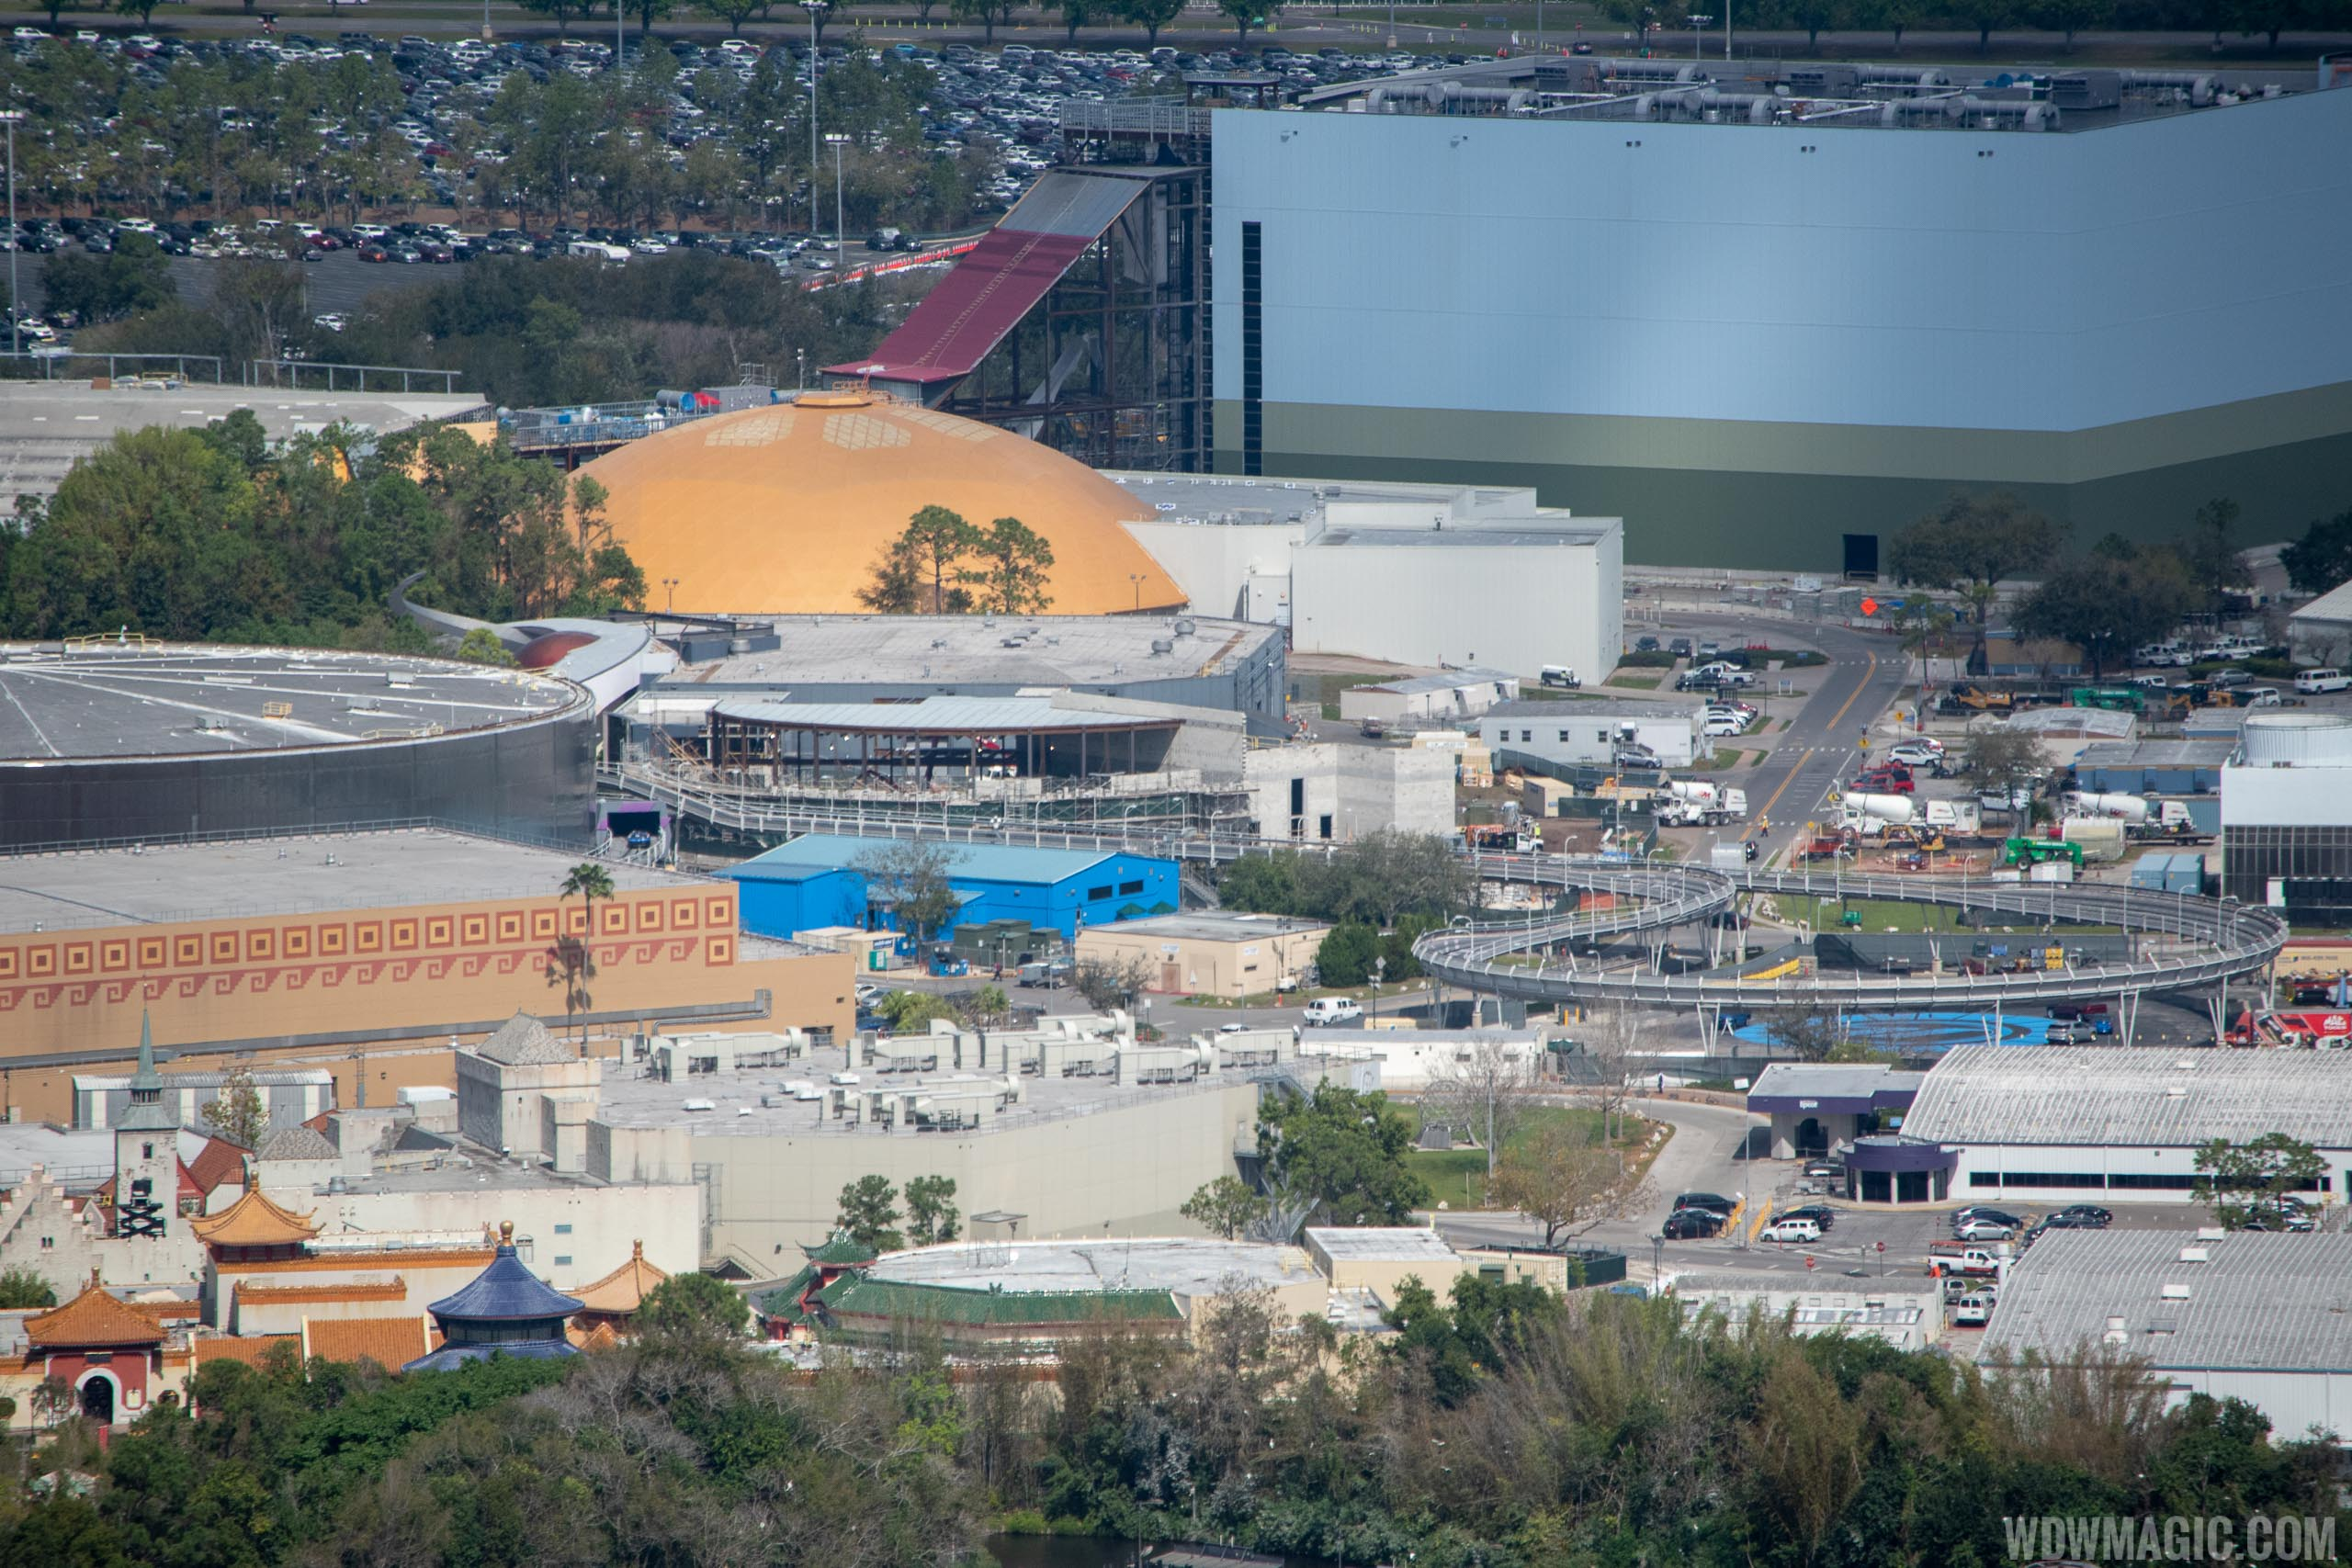 Epcot Space Restaurant construction - February 2019